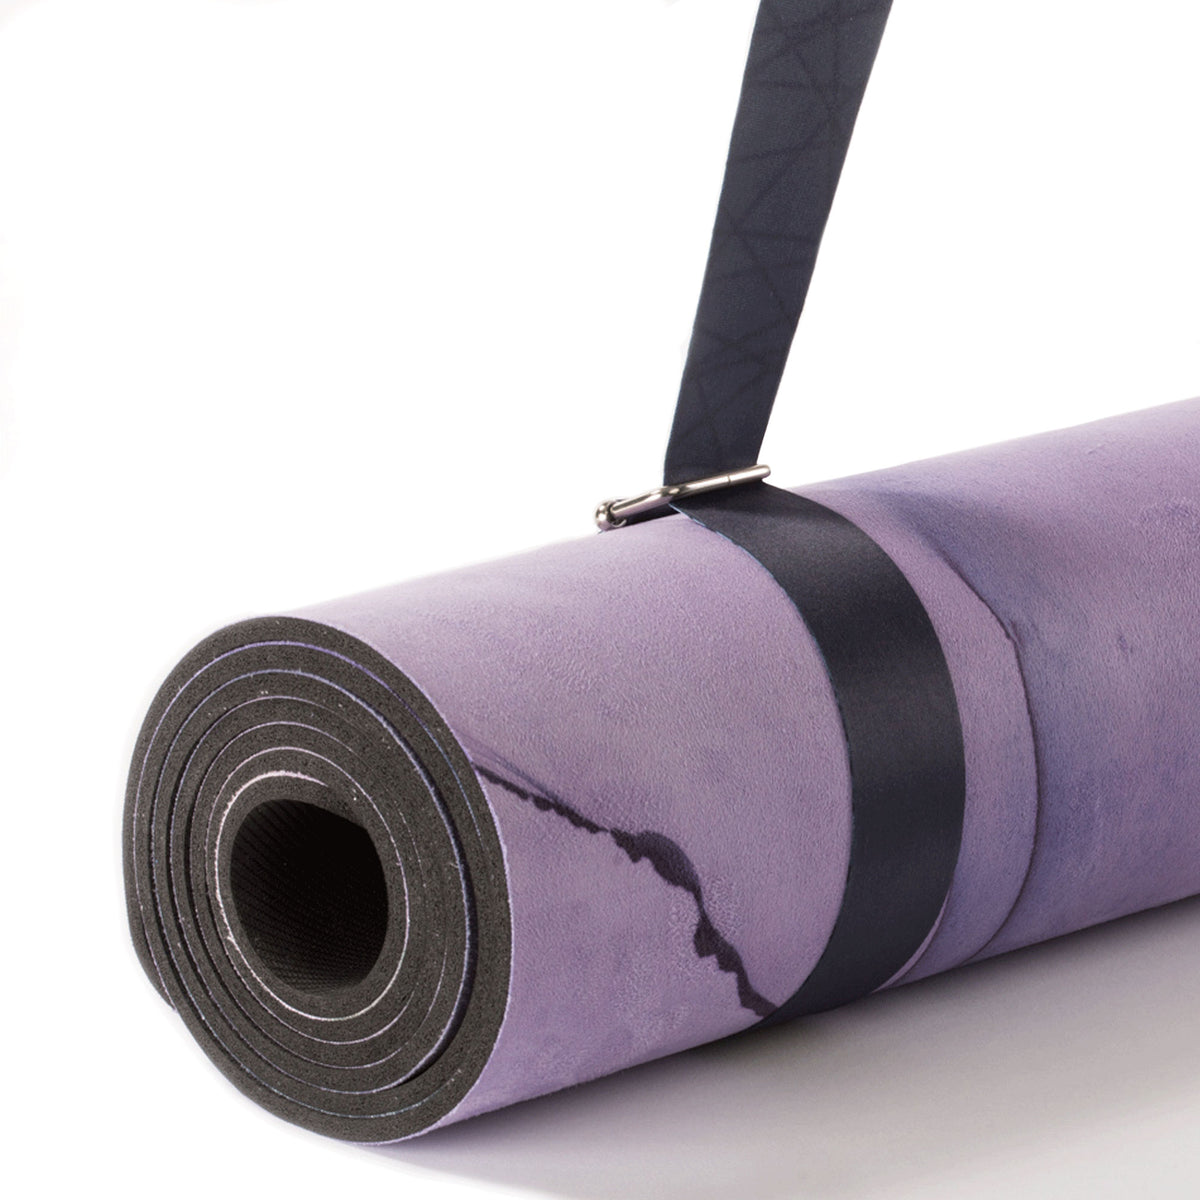 Metaform Yoga Mat Strap